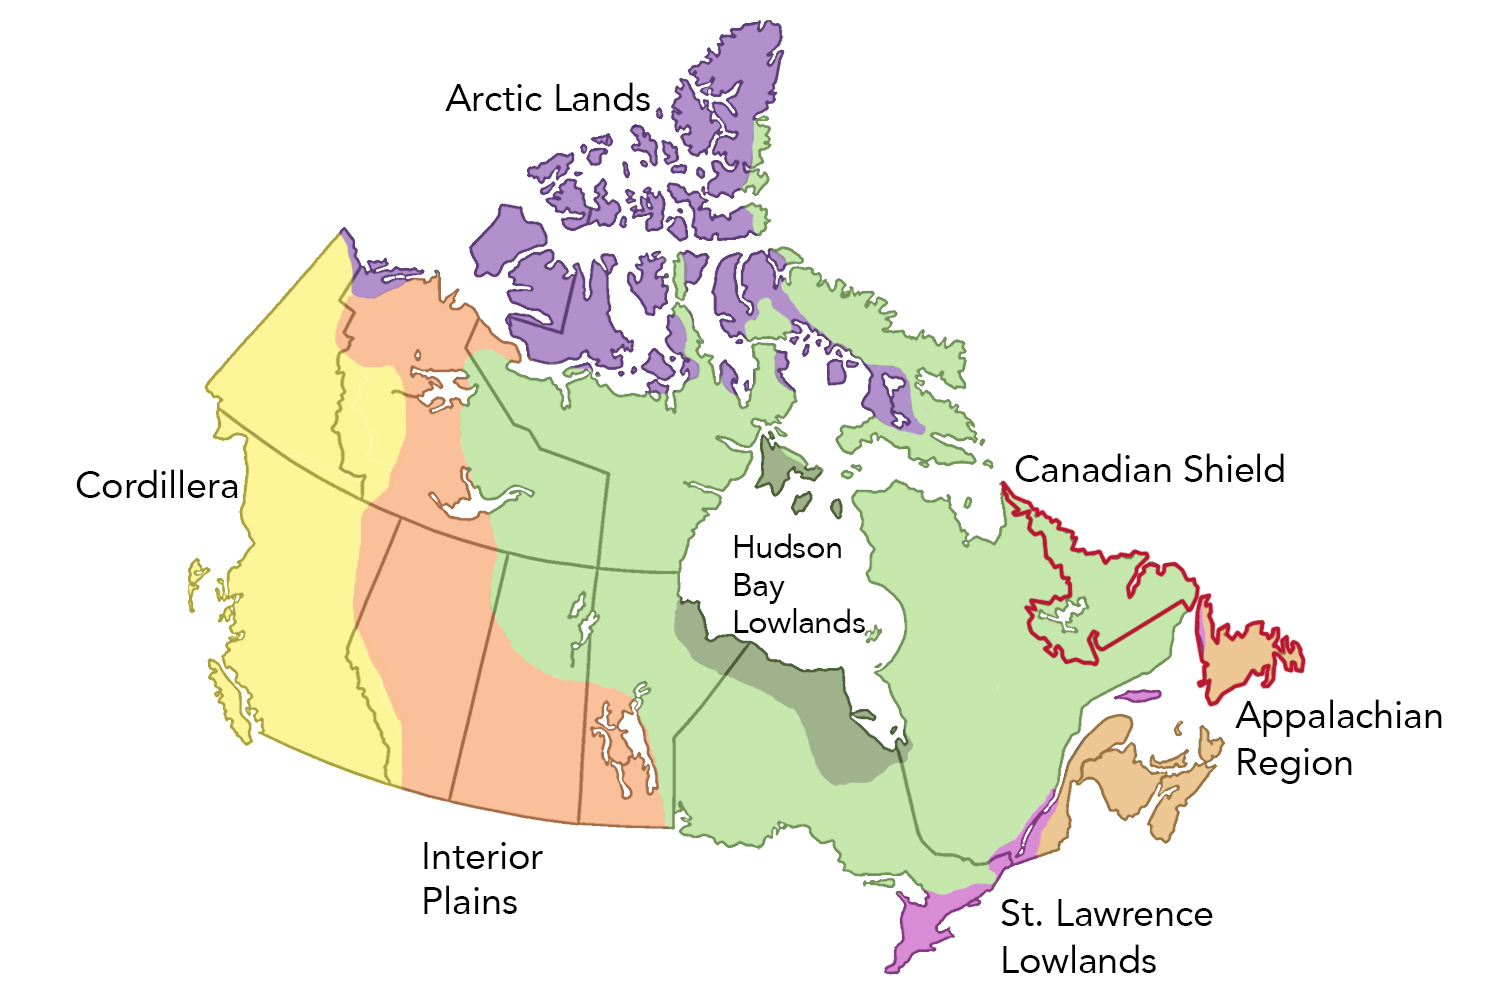 Newfoundland and Labrador's Physiographic Regions